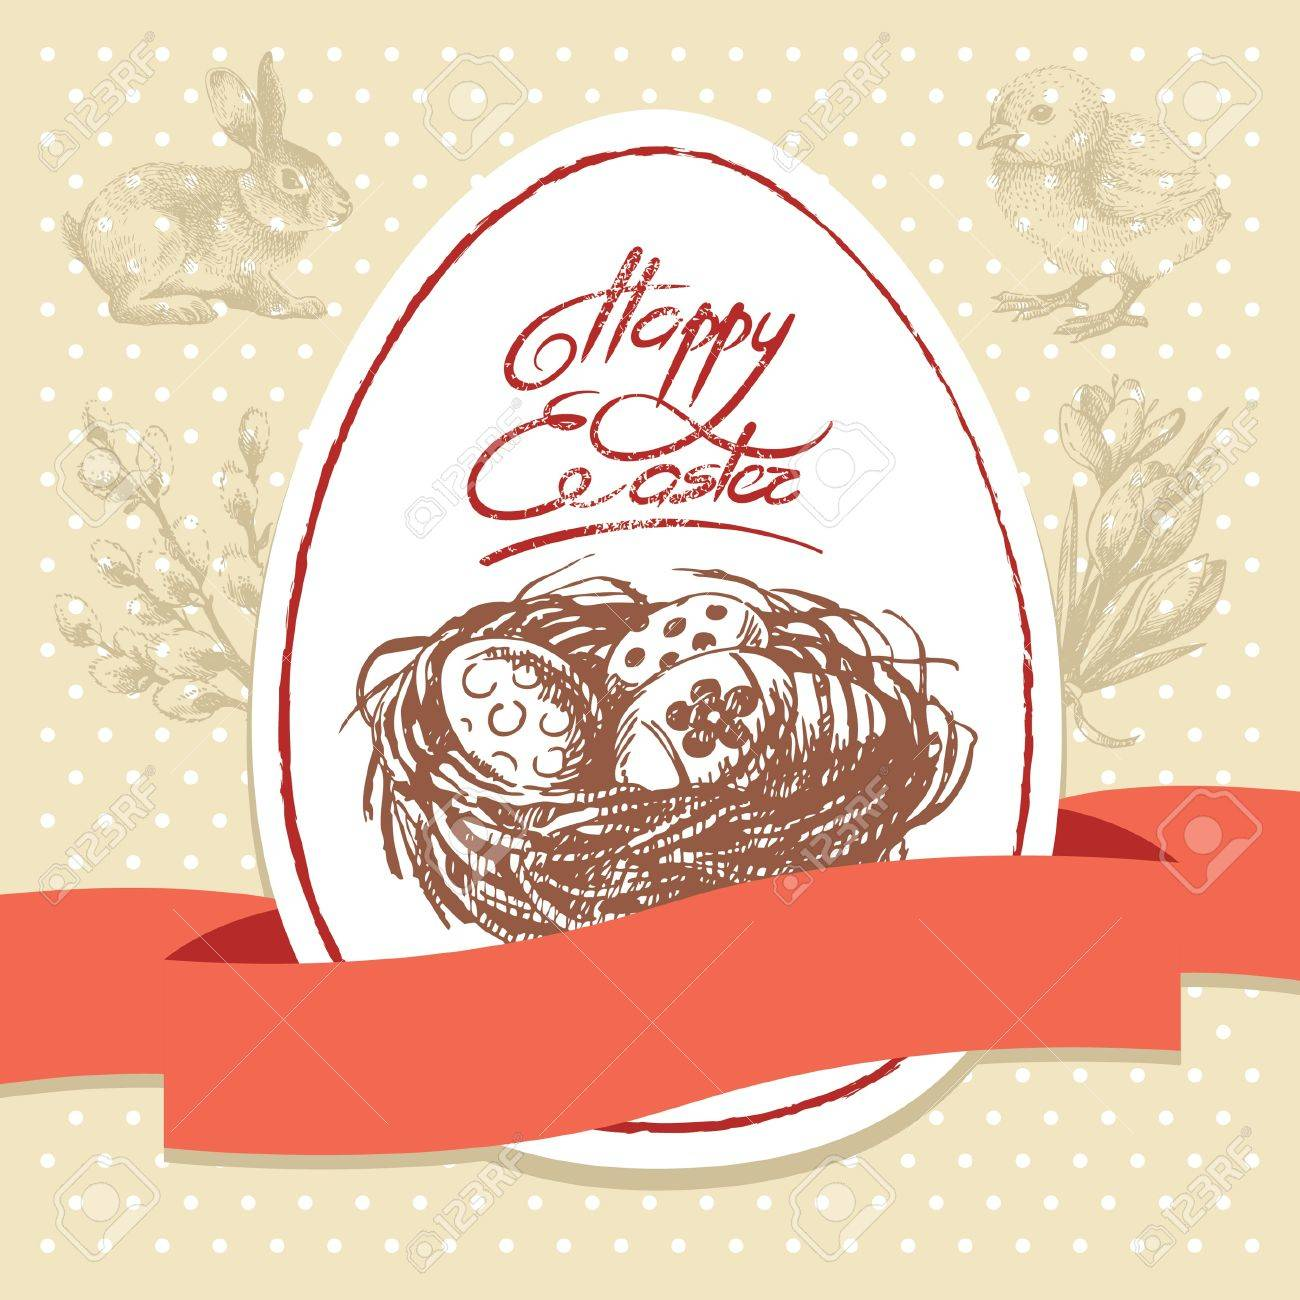 Vintage Easter background, hand drawn illustration. Easter greeting card Stock Vector - 18435933